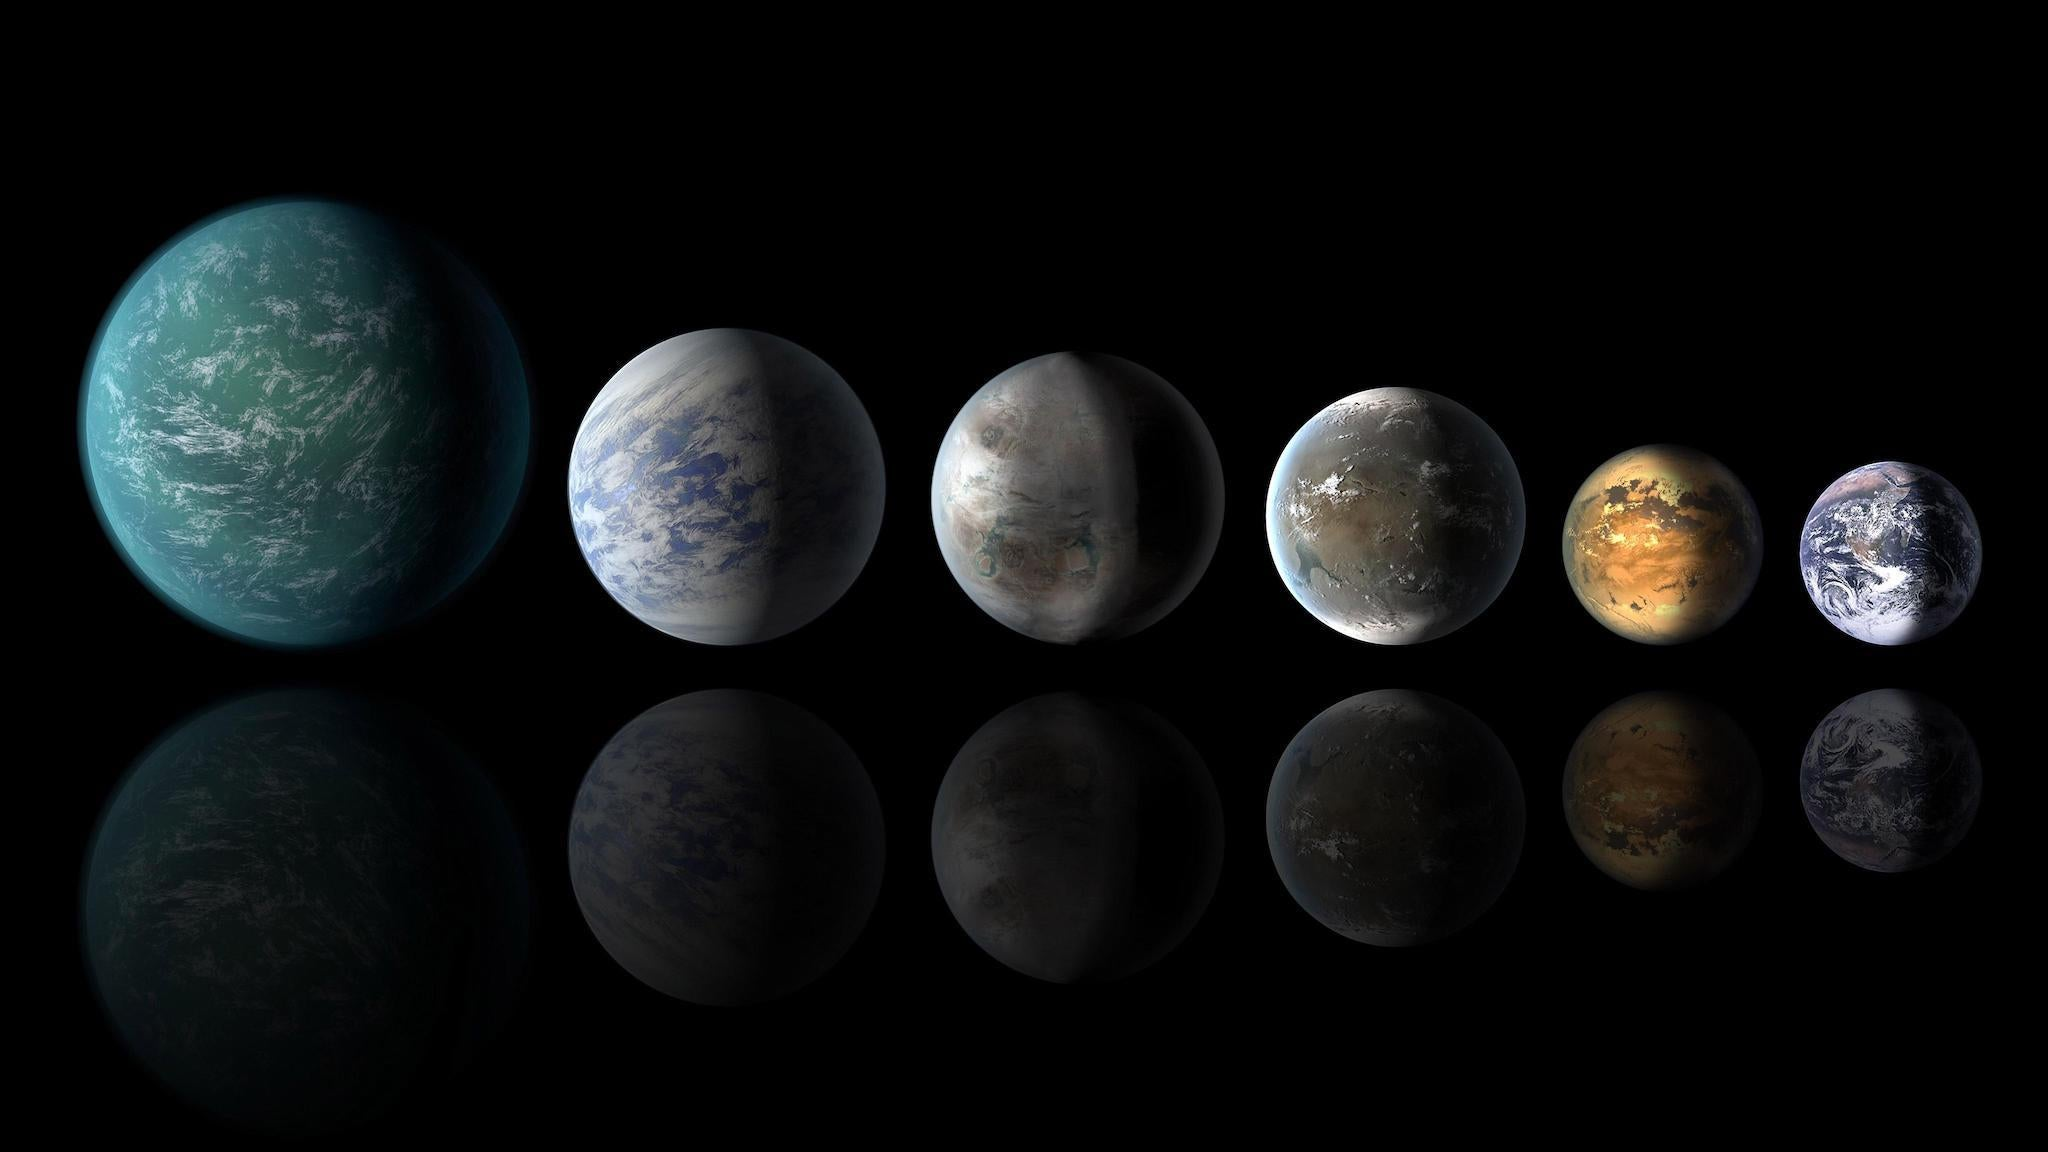 Watery worlds could be common throughout the galaxy – suggesting life could be more likely than we know